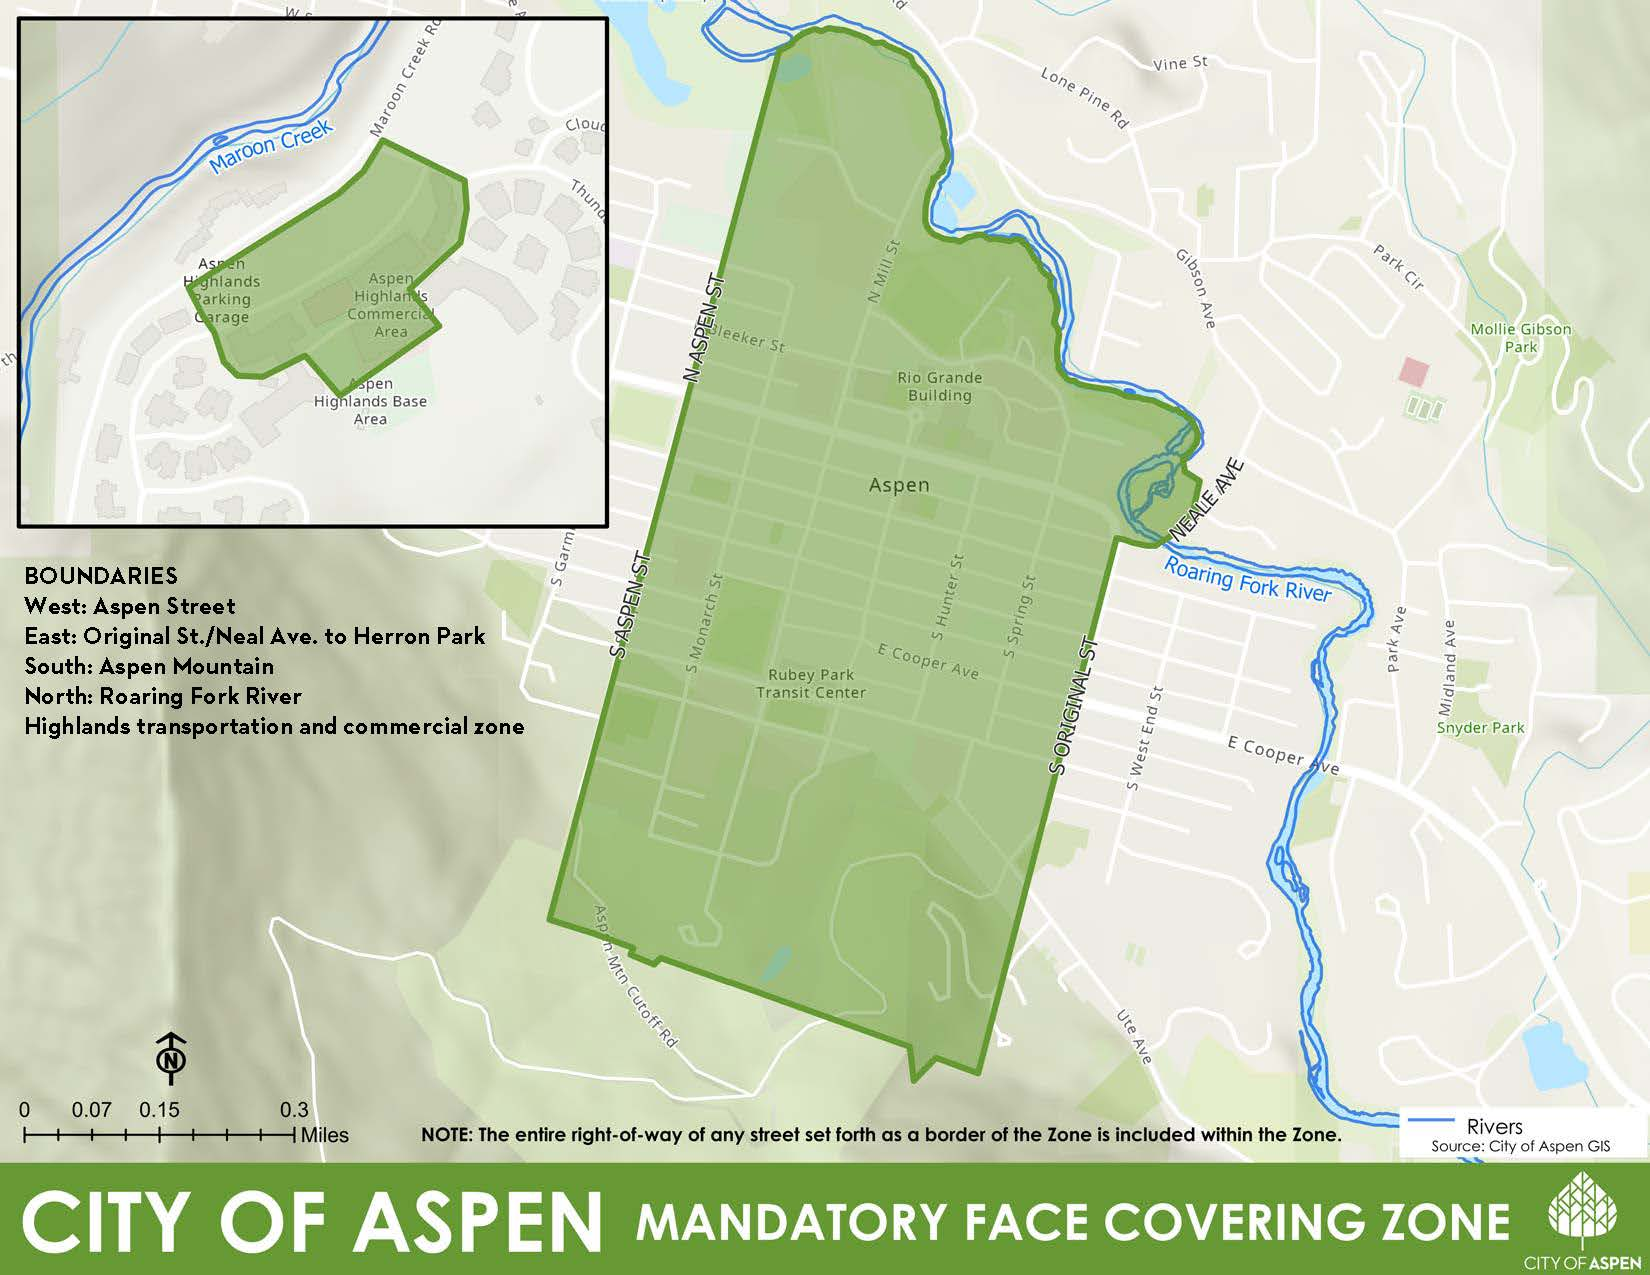 COA Mandatory Face Covering Zone no City Limit